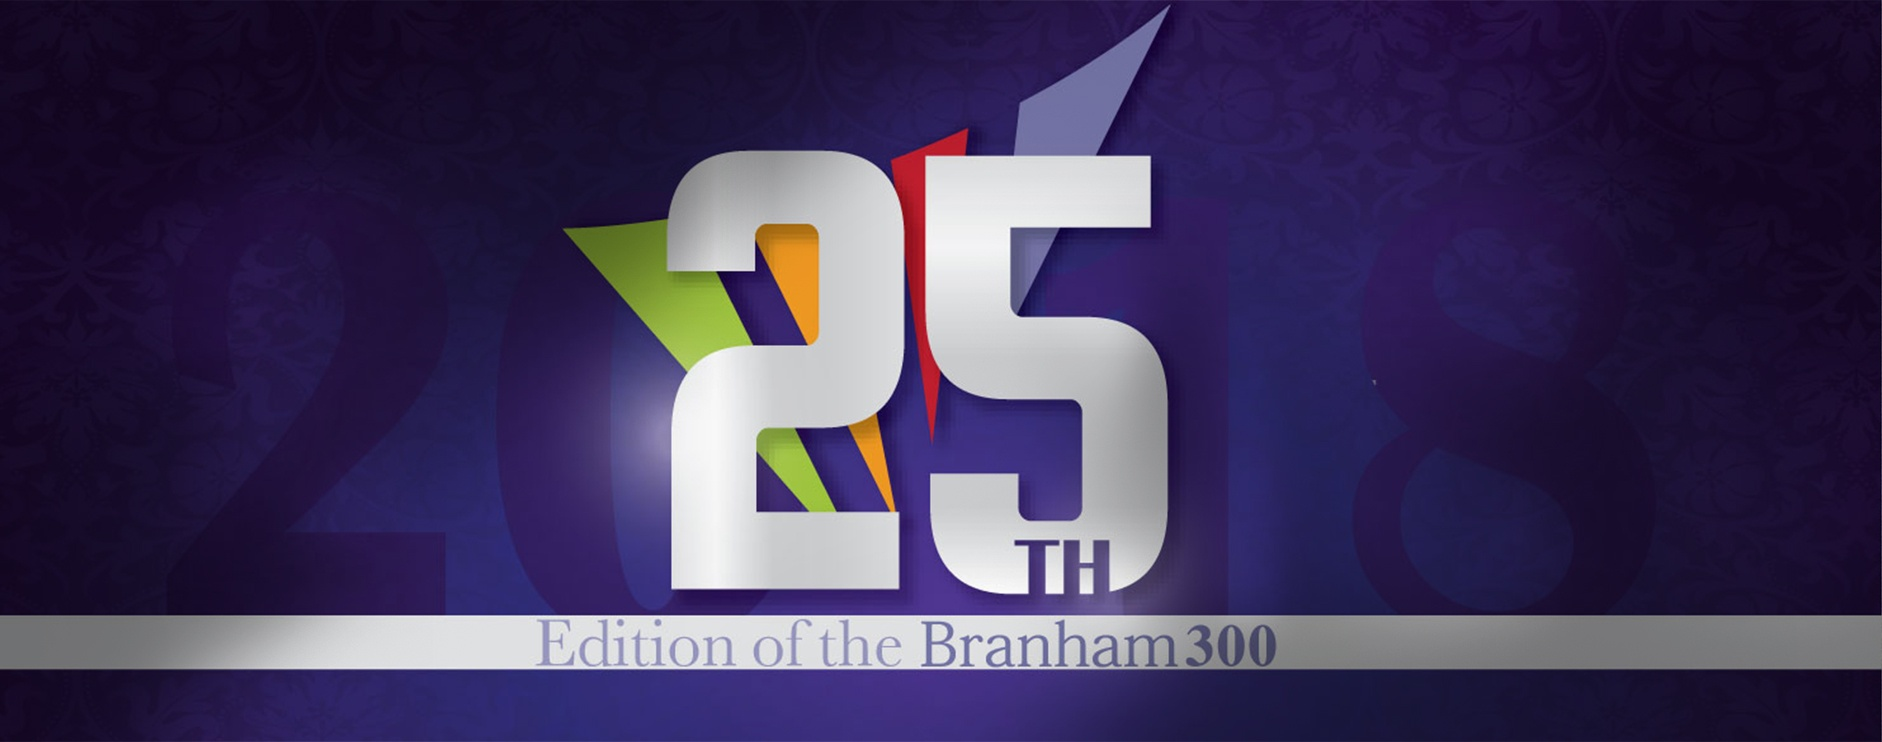 BenchSci Ranked One of the Top 25 Up and Coming Technology Companies on the Branham300